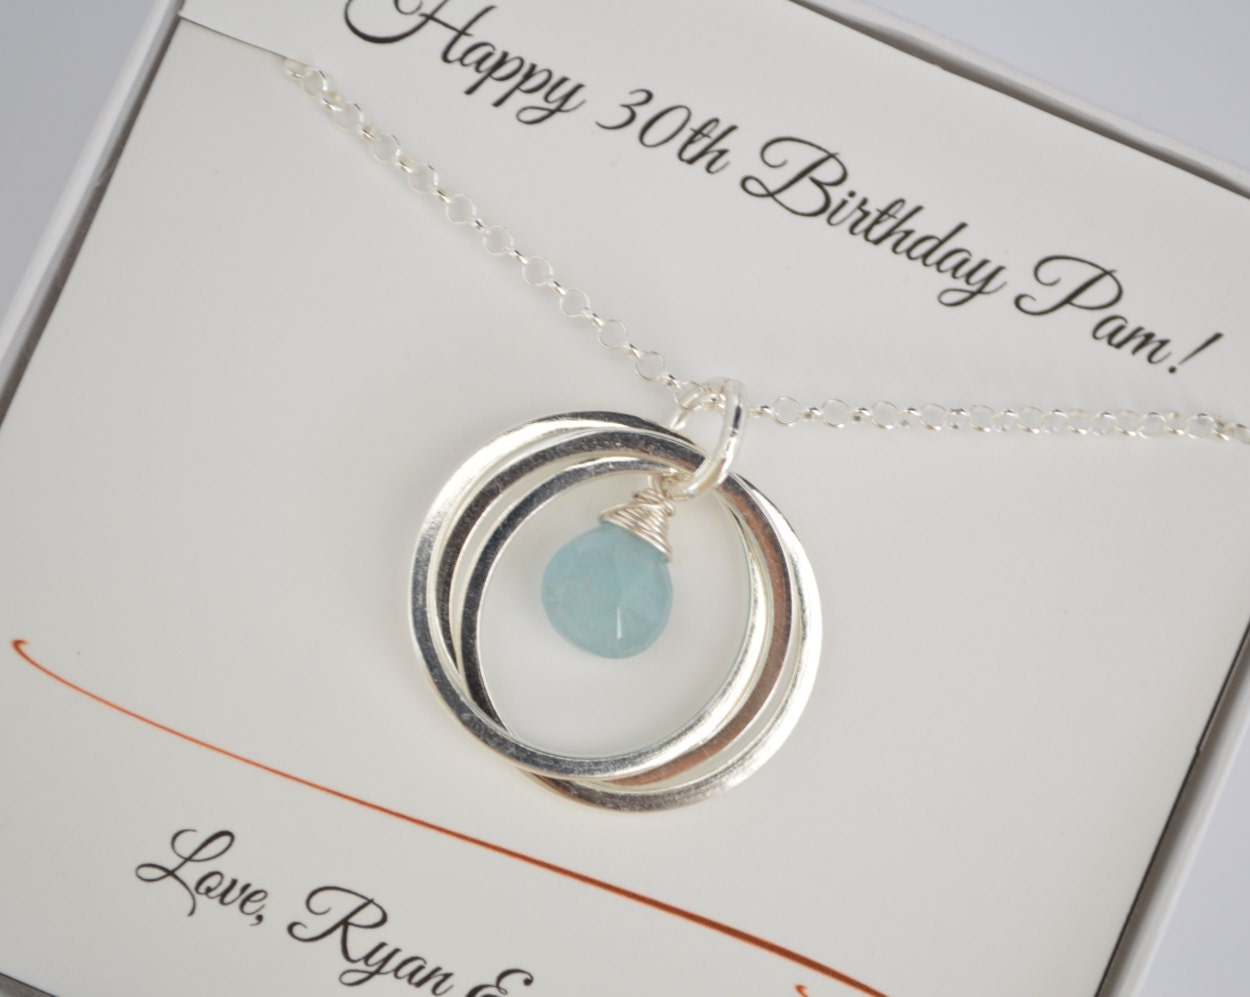 30th Birthday Gift For Women Girlfriend Aquamarine Birthstone Jewelry 3rd Anniversary Best Friend NecklaceSister